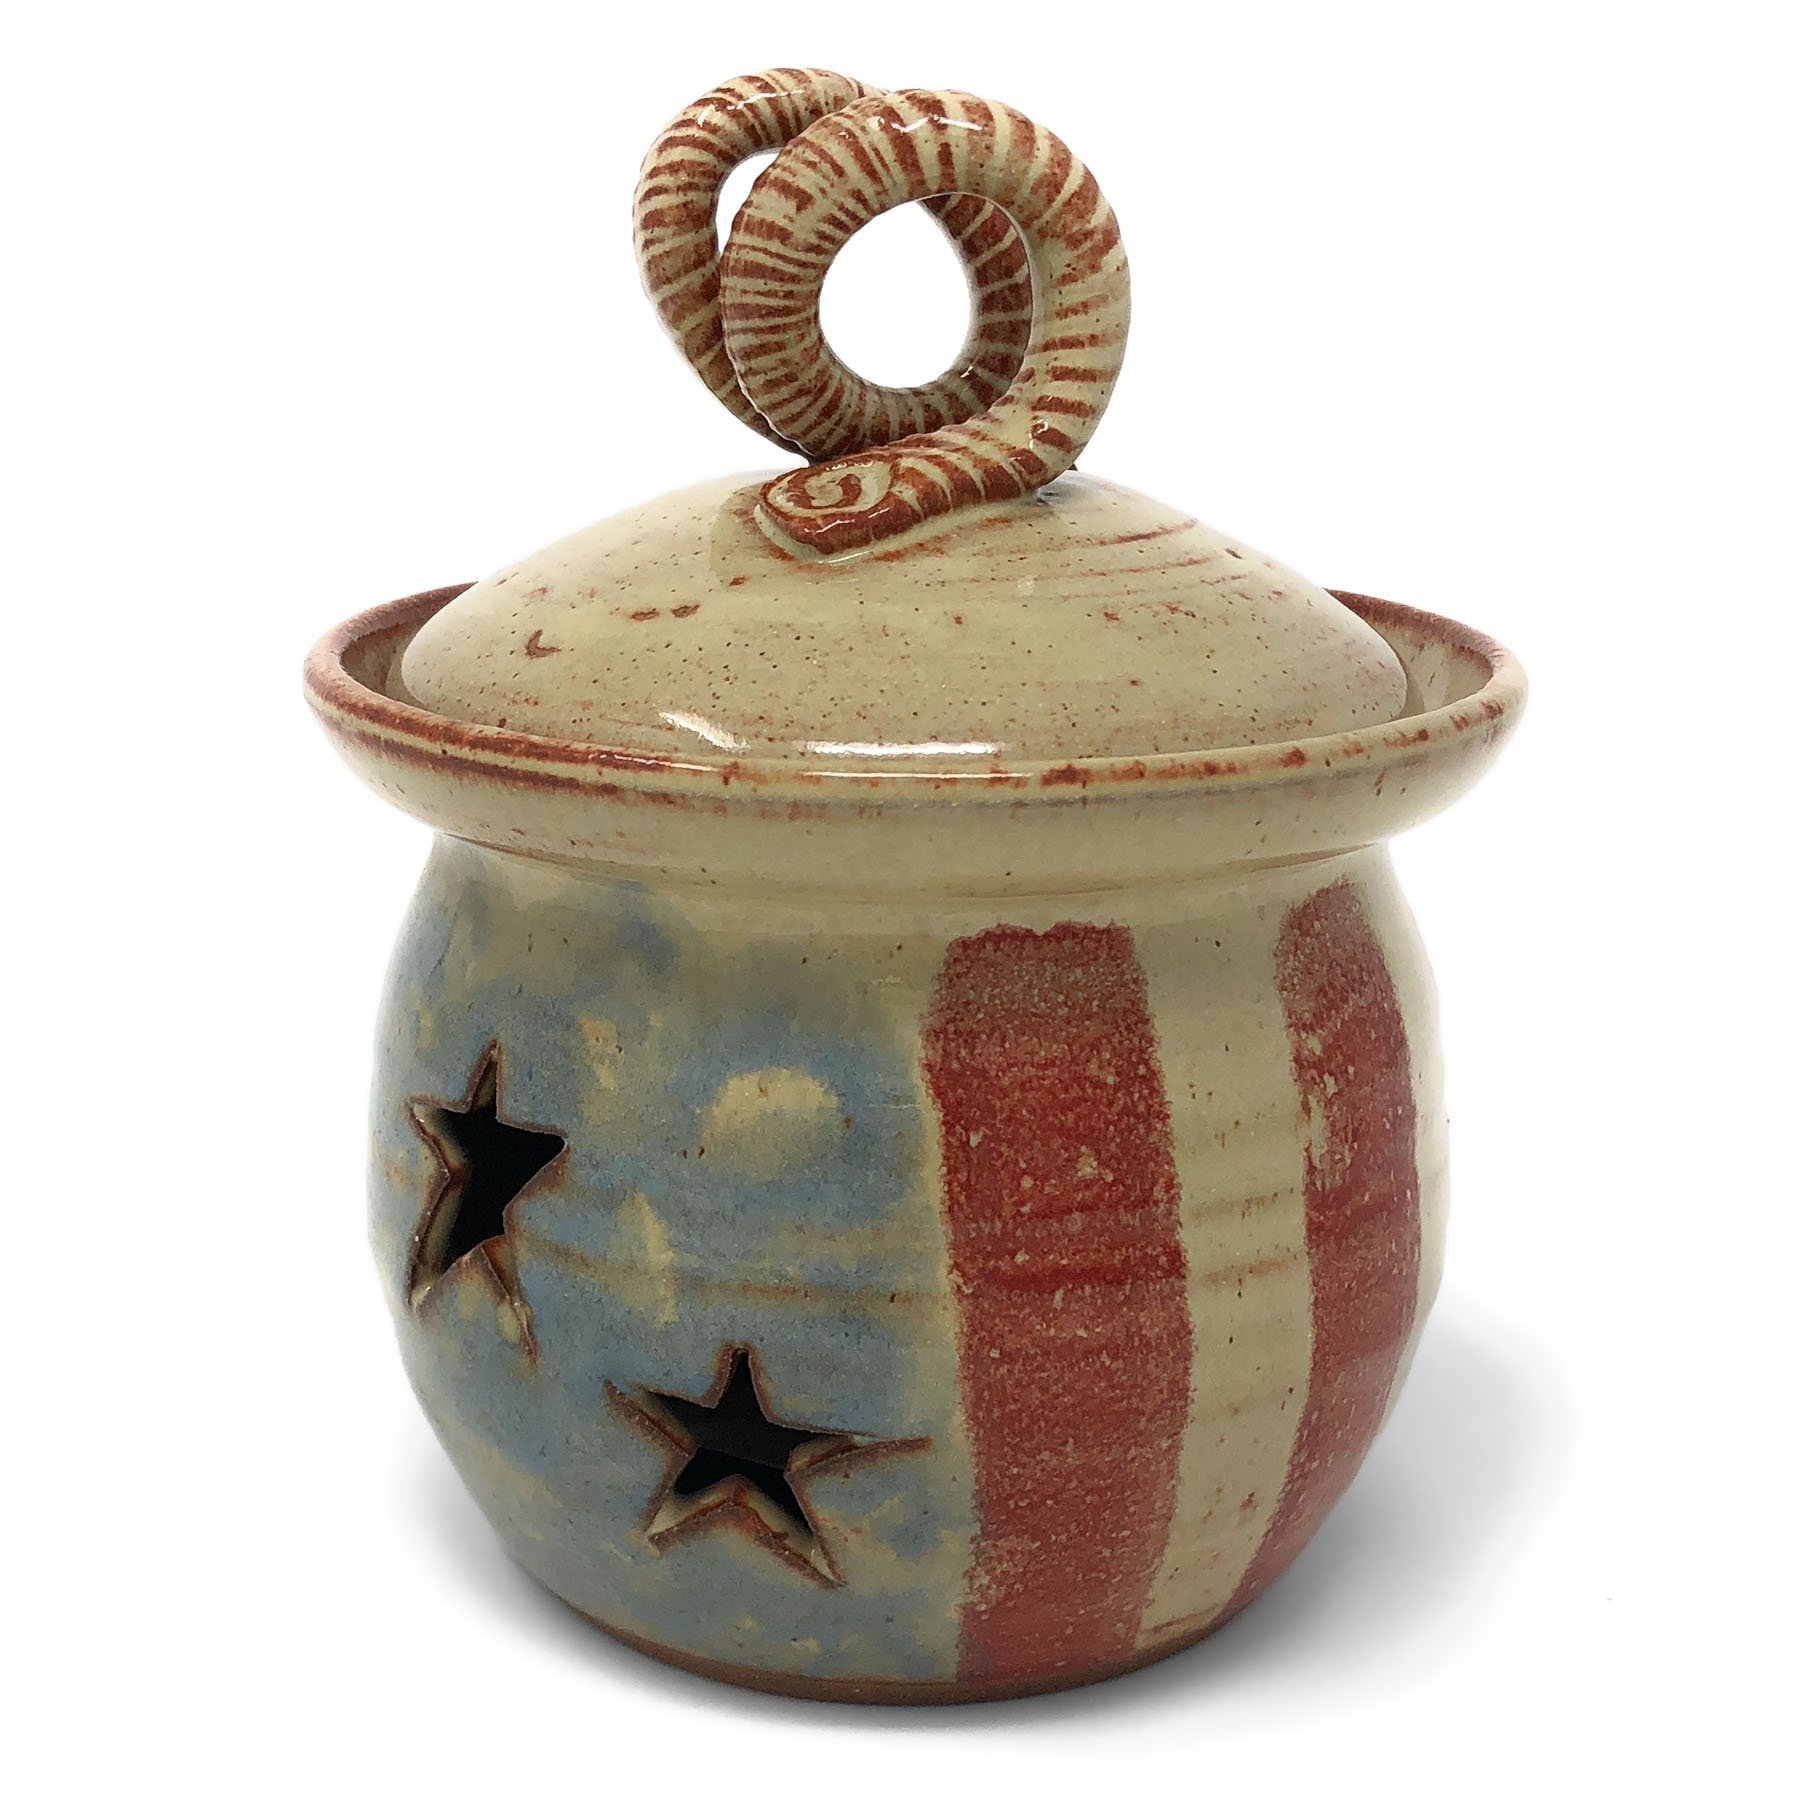 MudWorks Old Glory Garlic Keeper by MudWorks Pottery